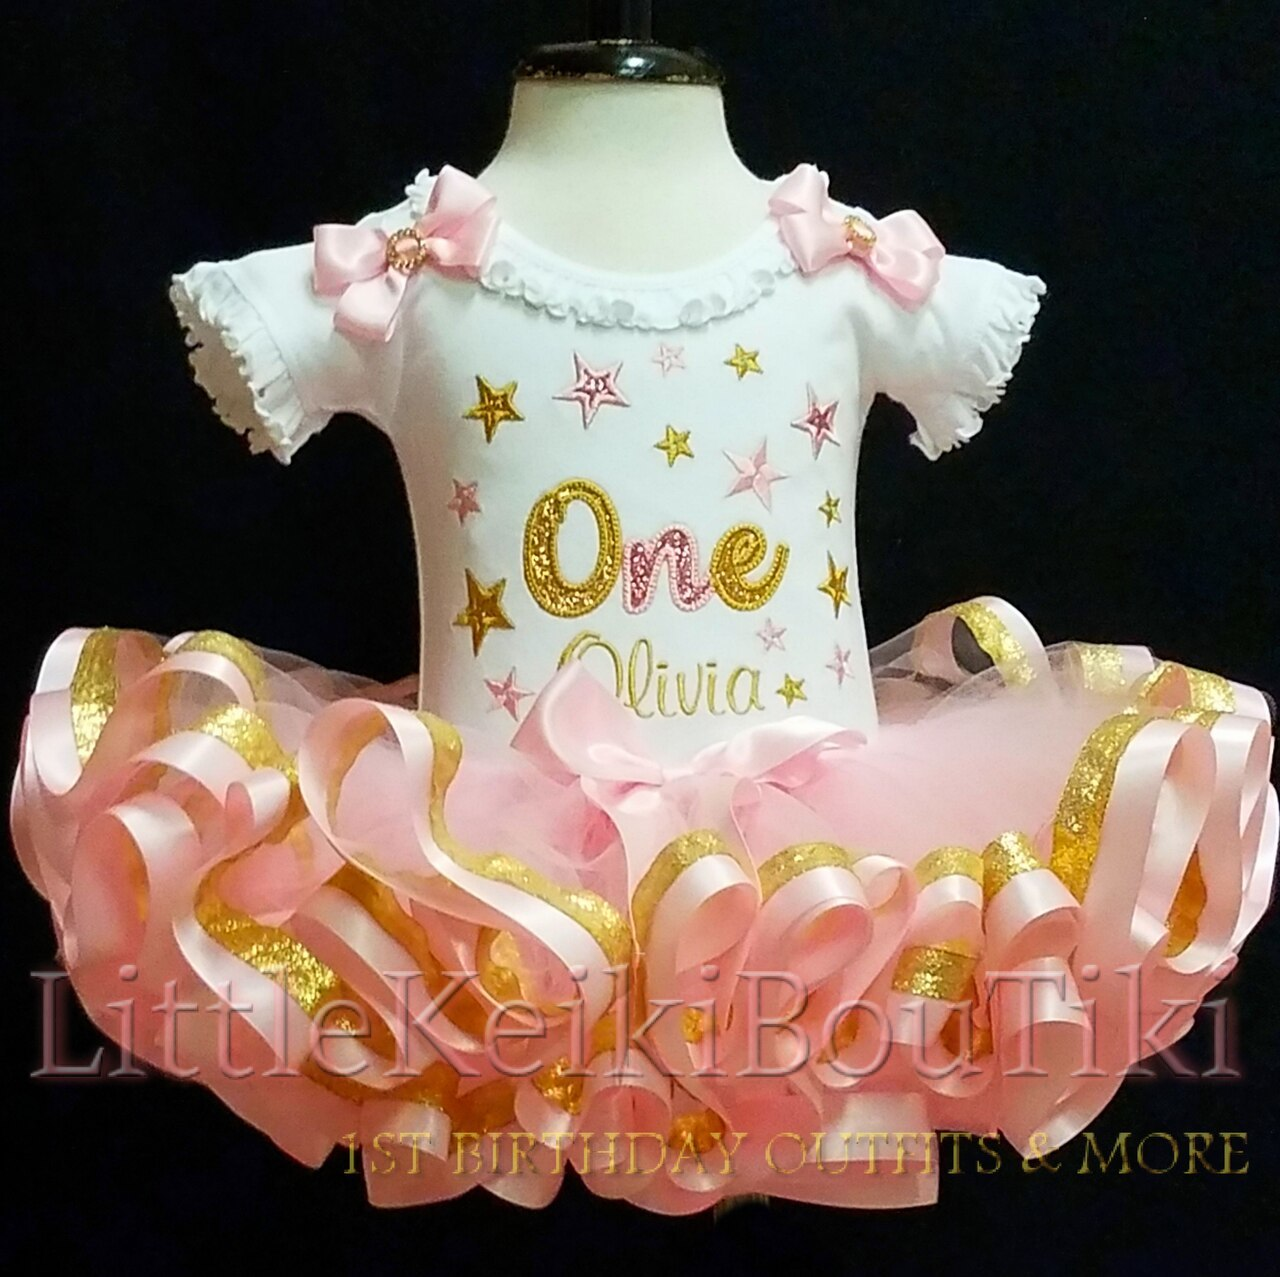 pink and gold birthday 1st birthday girl outfit 1st birthday pink gold birthday onesie bloomers personalized word one first birthday outfit